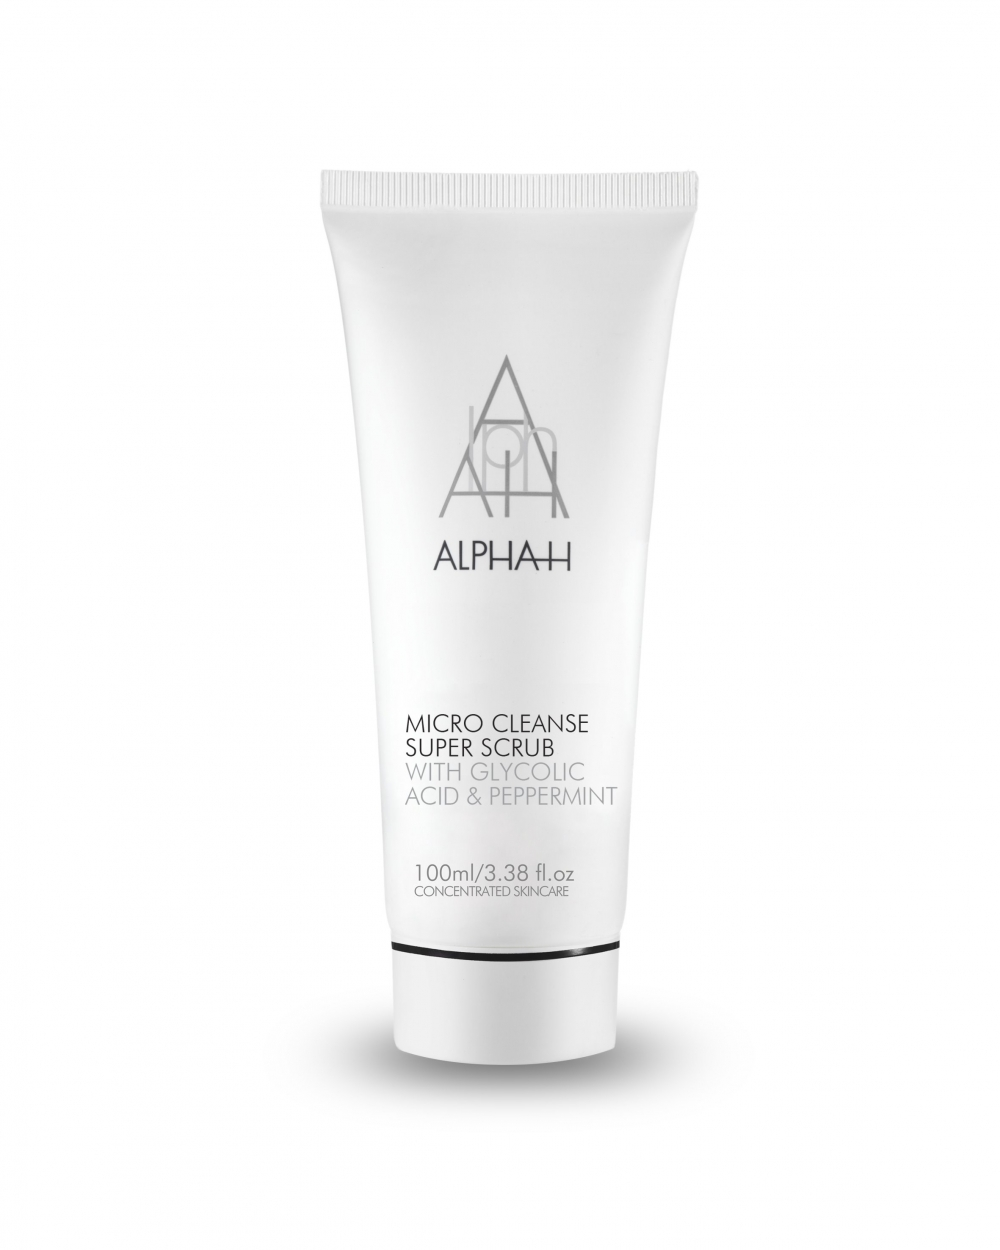 ALPHA-H MICRO CLEANSE SUPER SCRUB WITH GLYCOLIC ACID & PEPPERMINT PEELING